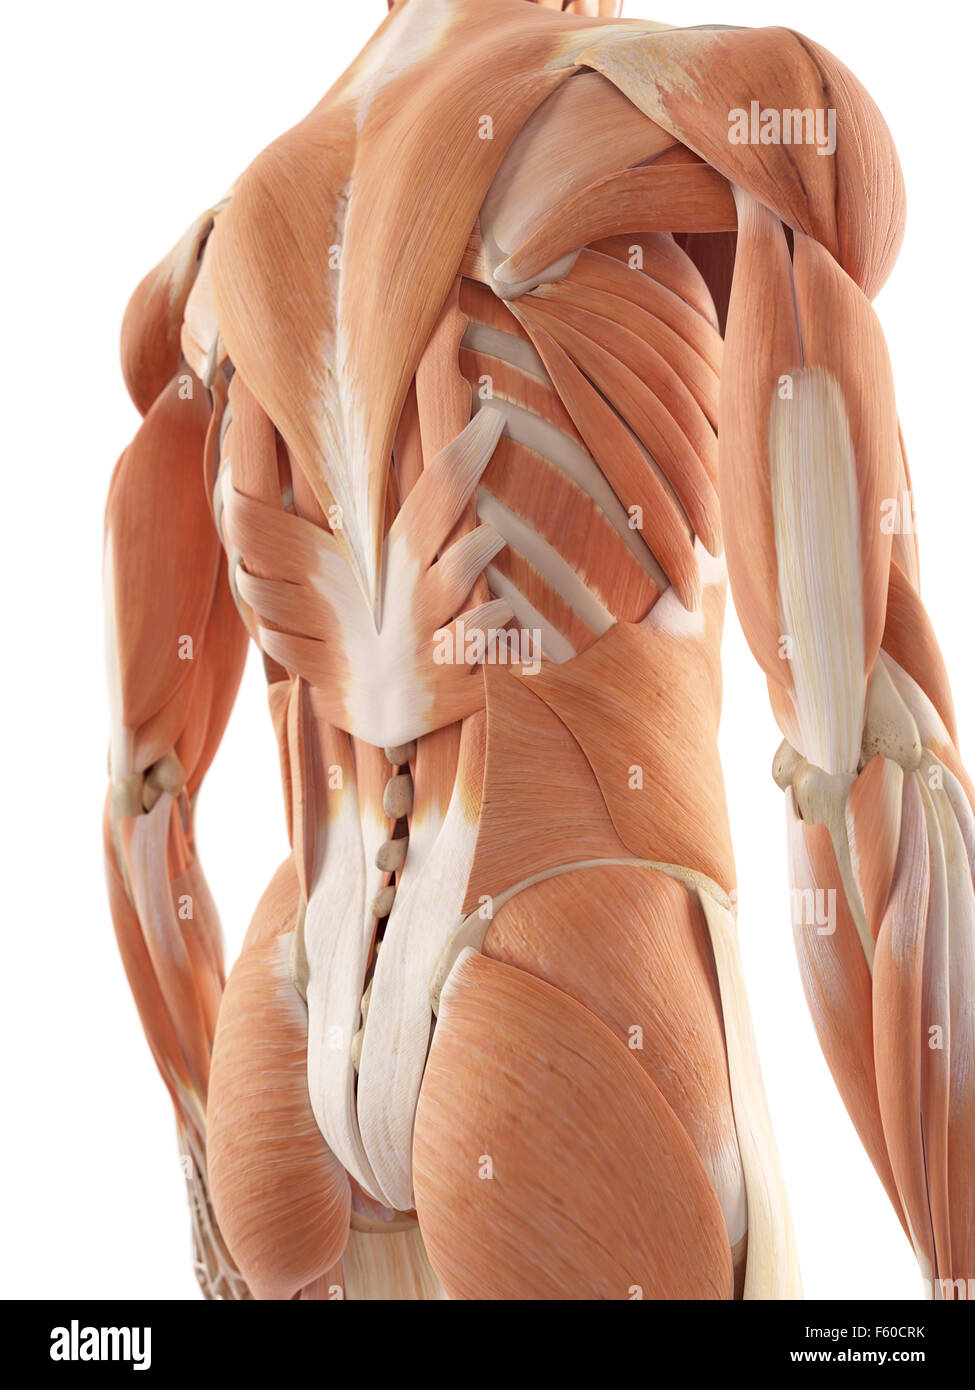 Back Musculature Stock Photos & Back Musculature Stock Images - Alamy